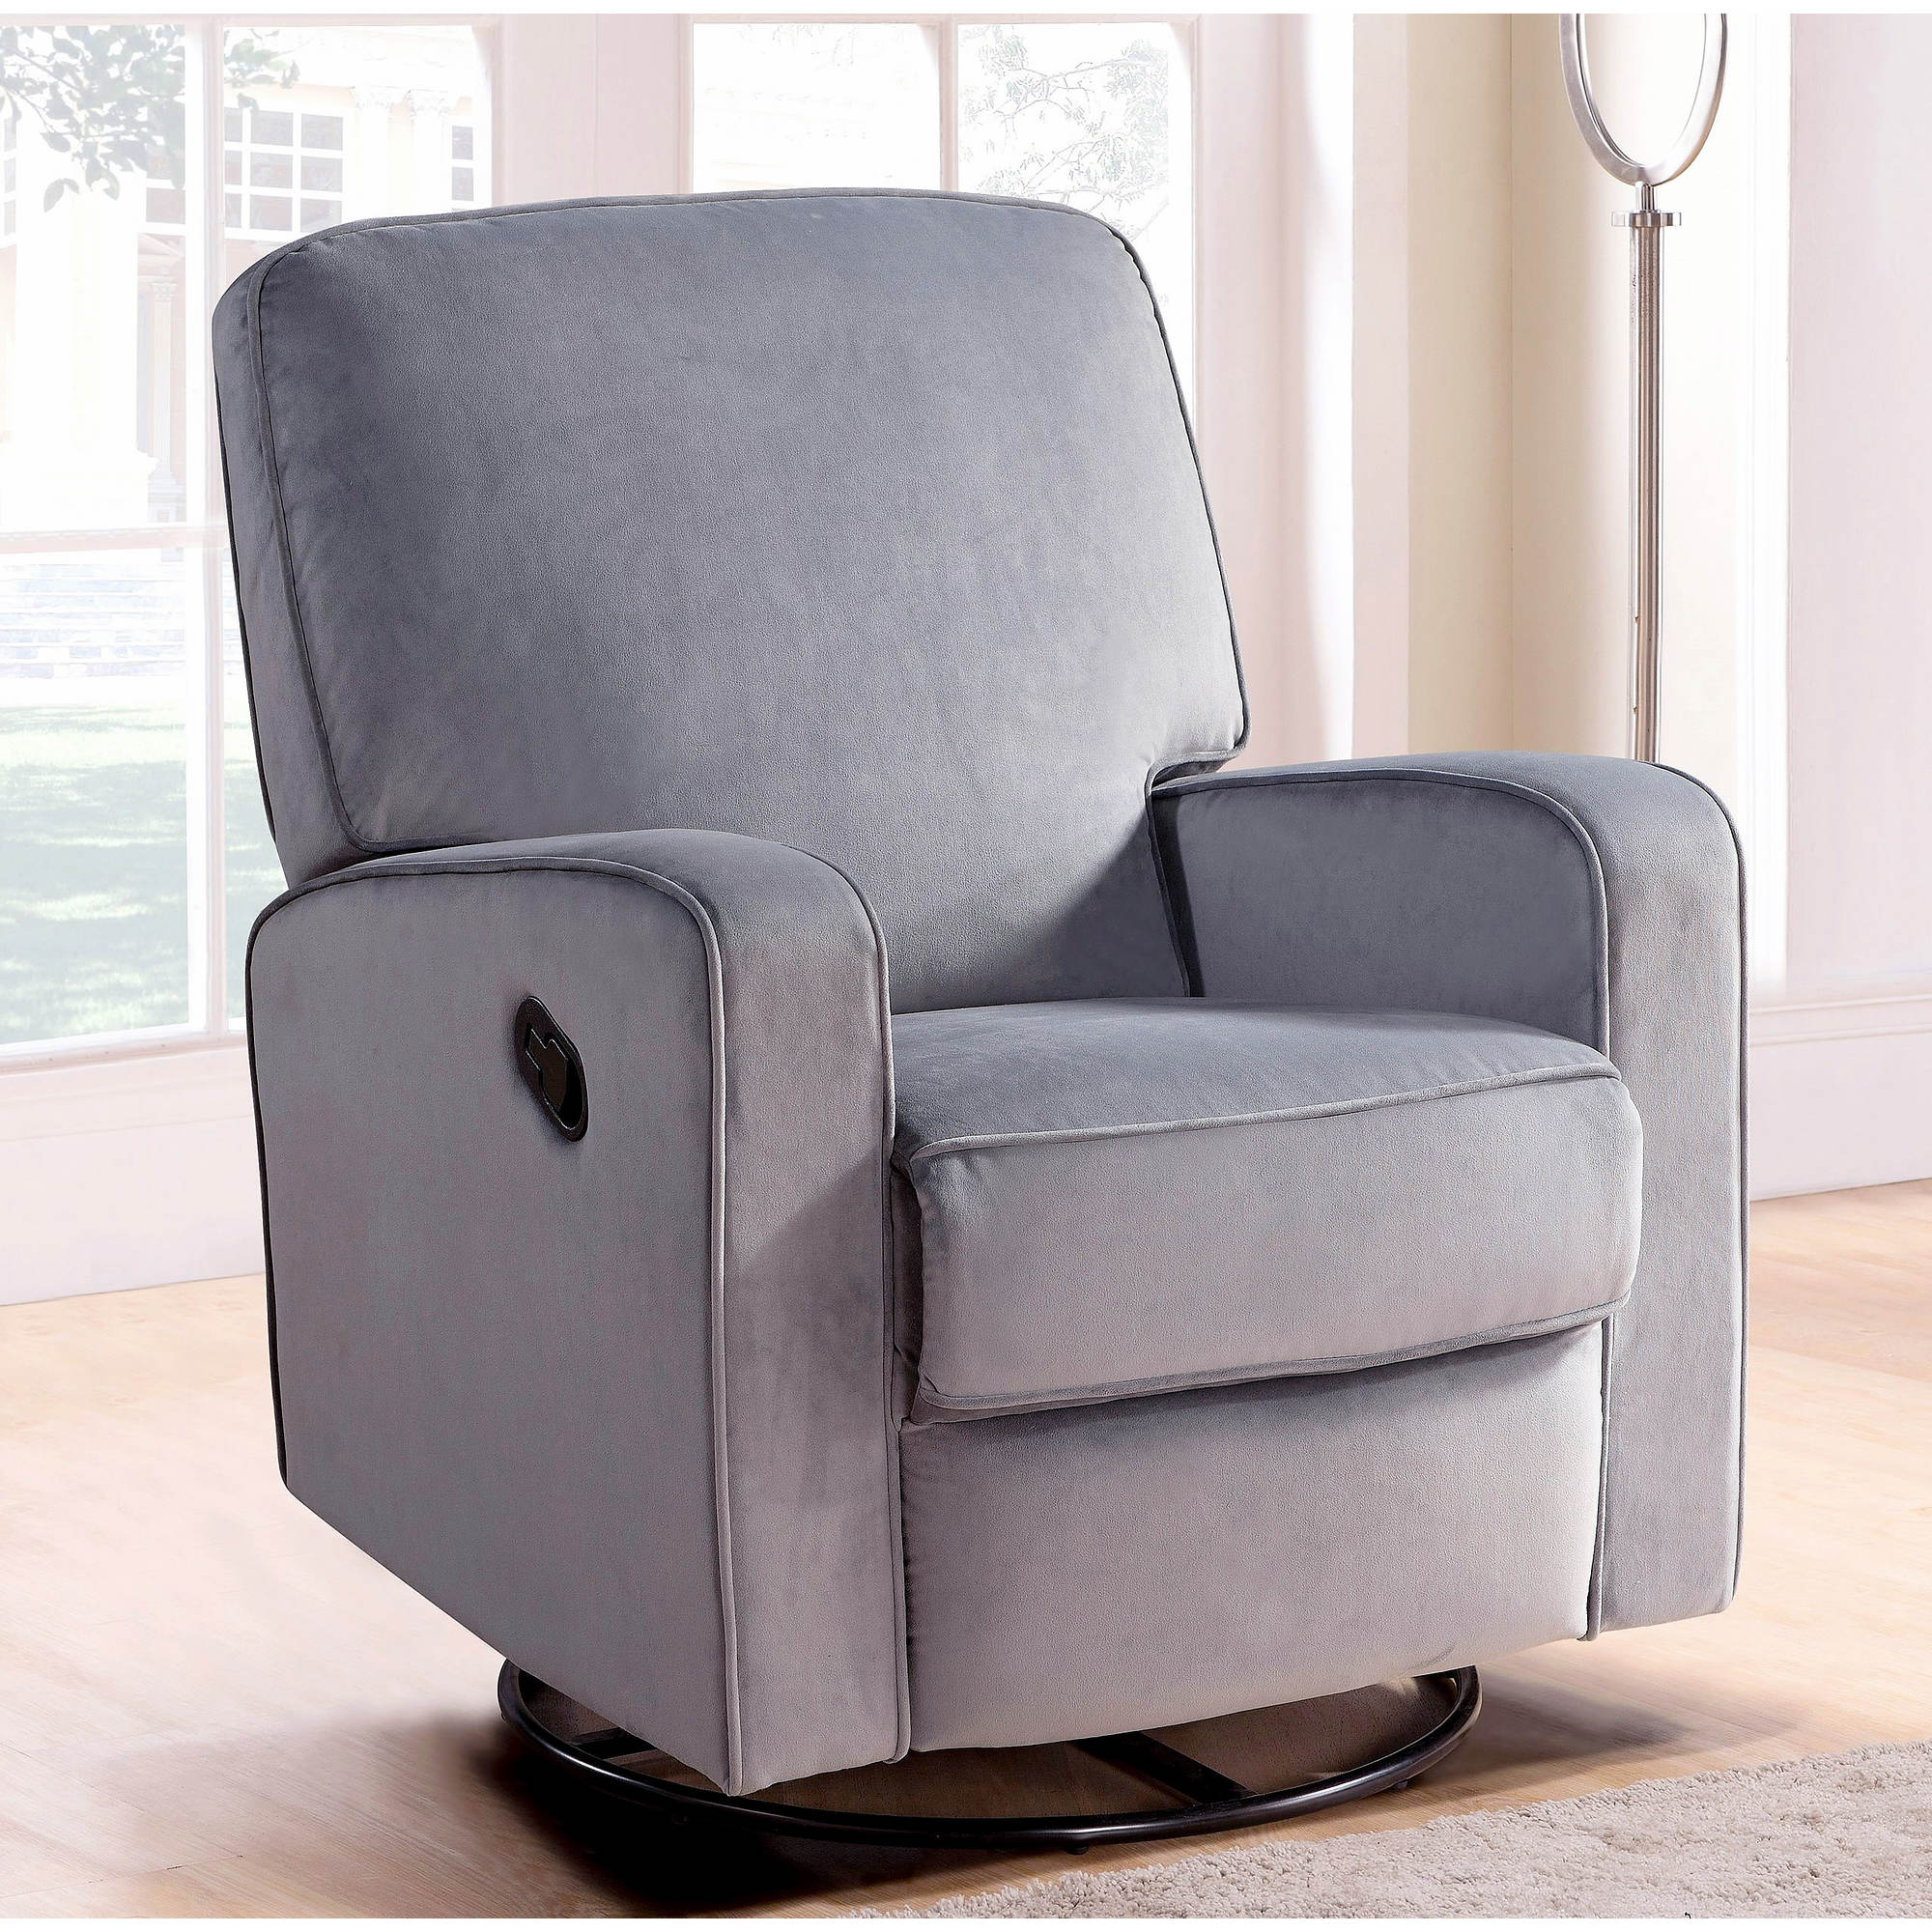 living chairs pike home interesting livings swivel best reclining for ingenious rocking chair rocker by room ideas recliner inspiration furnishings